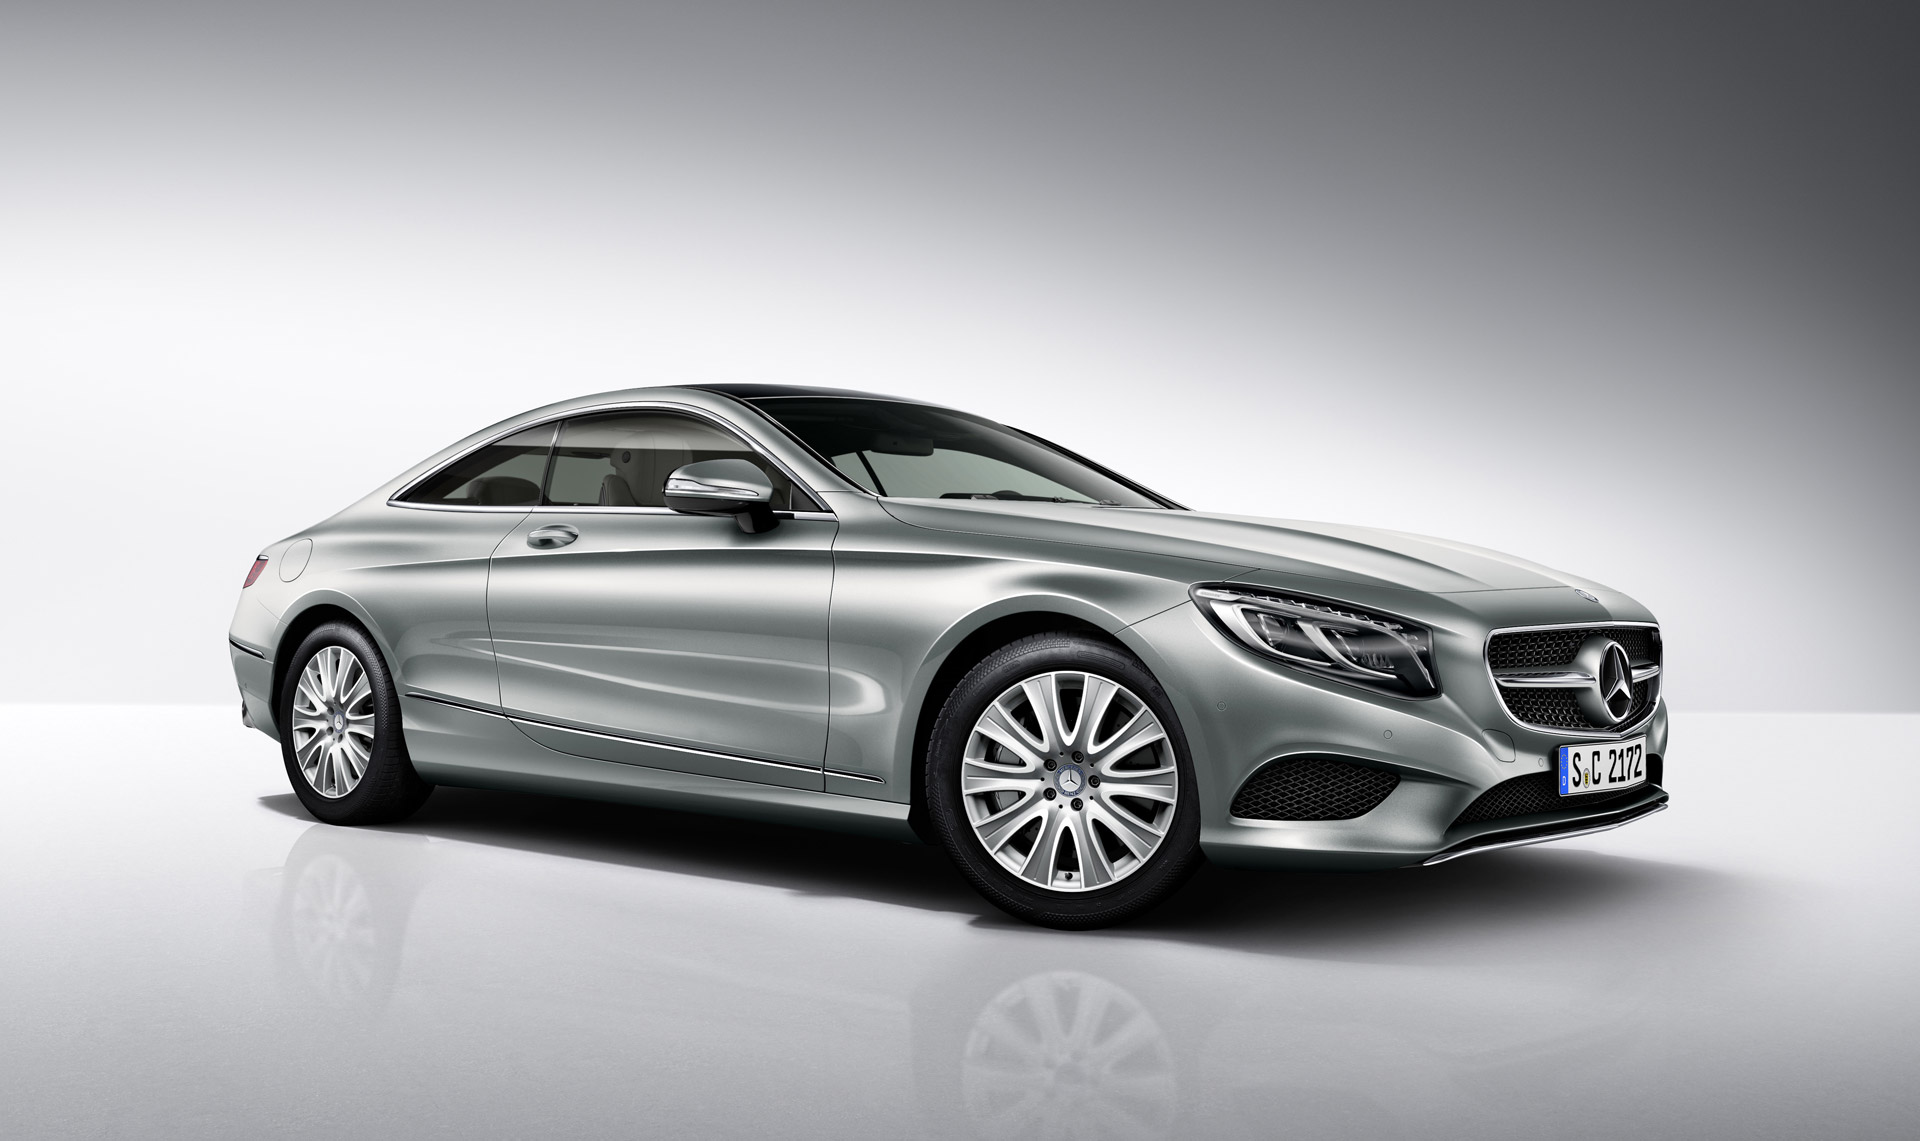 Mercedes benz adds s400 4matic model to s class coupe range for Mercedes benz coupes list